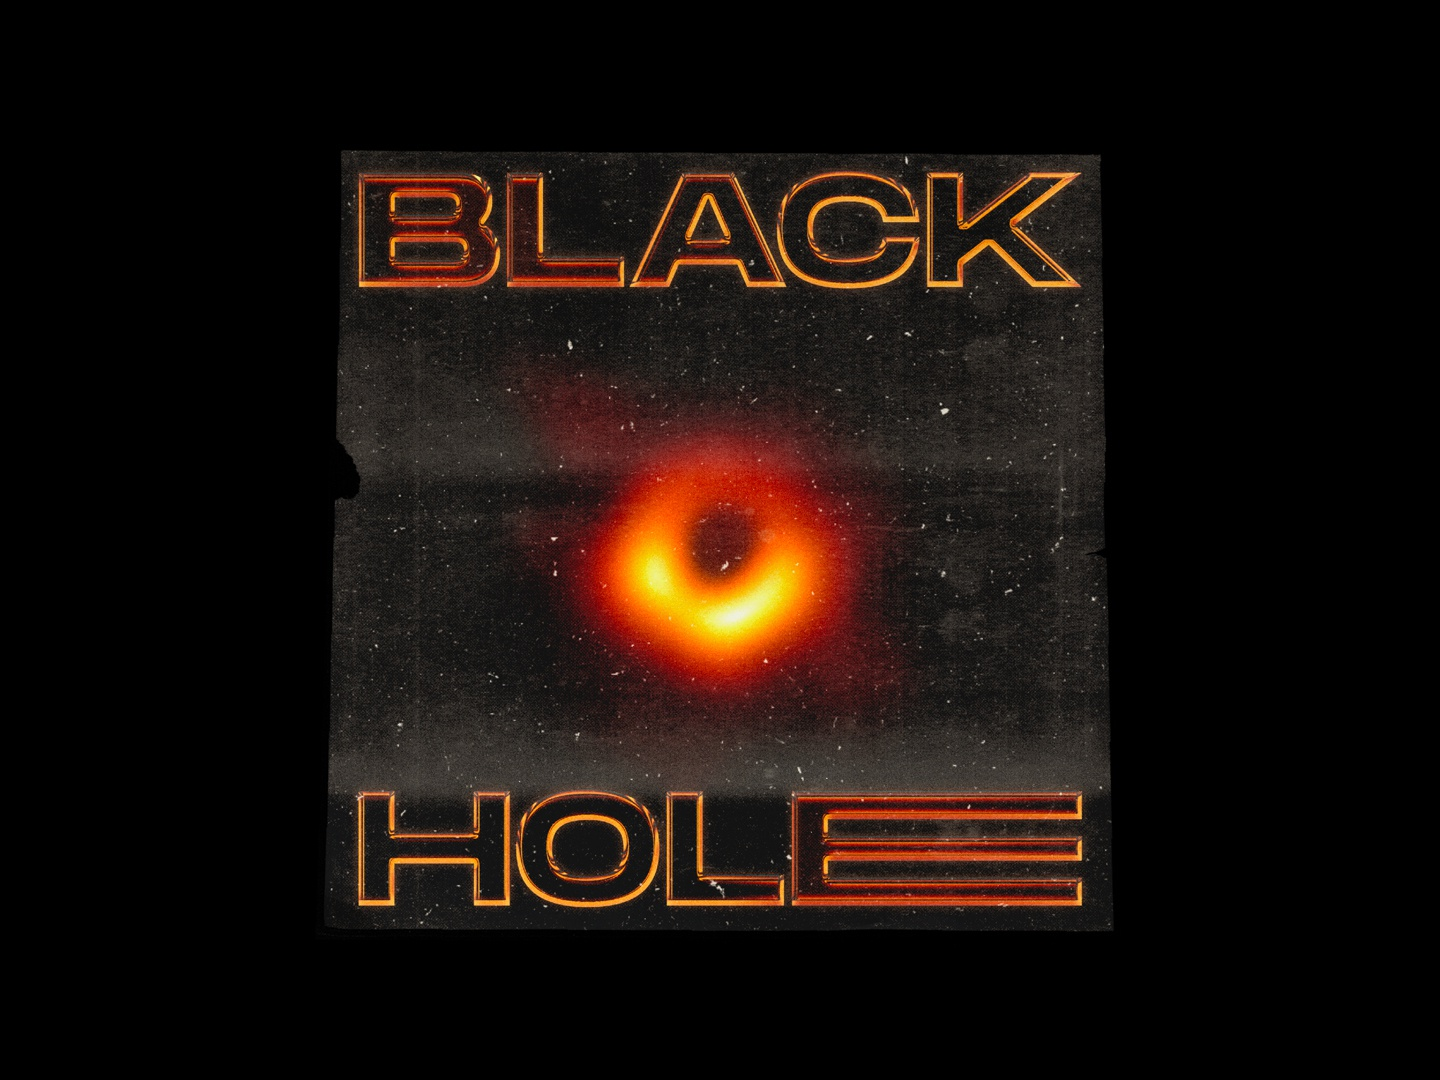 BLACK HOLE - Poster Design 2019 trend grunge texture grunge typography type minimal design graphicdesign graphic design poster challenge poster a day poster art poster design poster chrome black and red space blackhole black hole